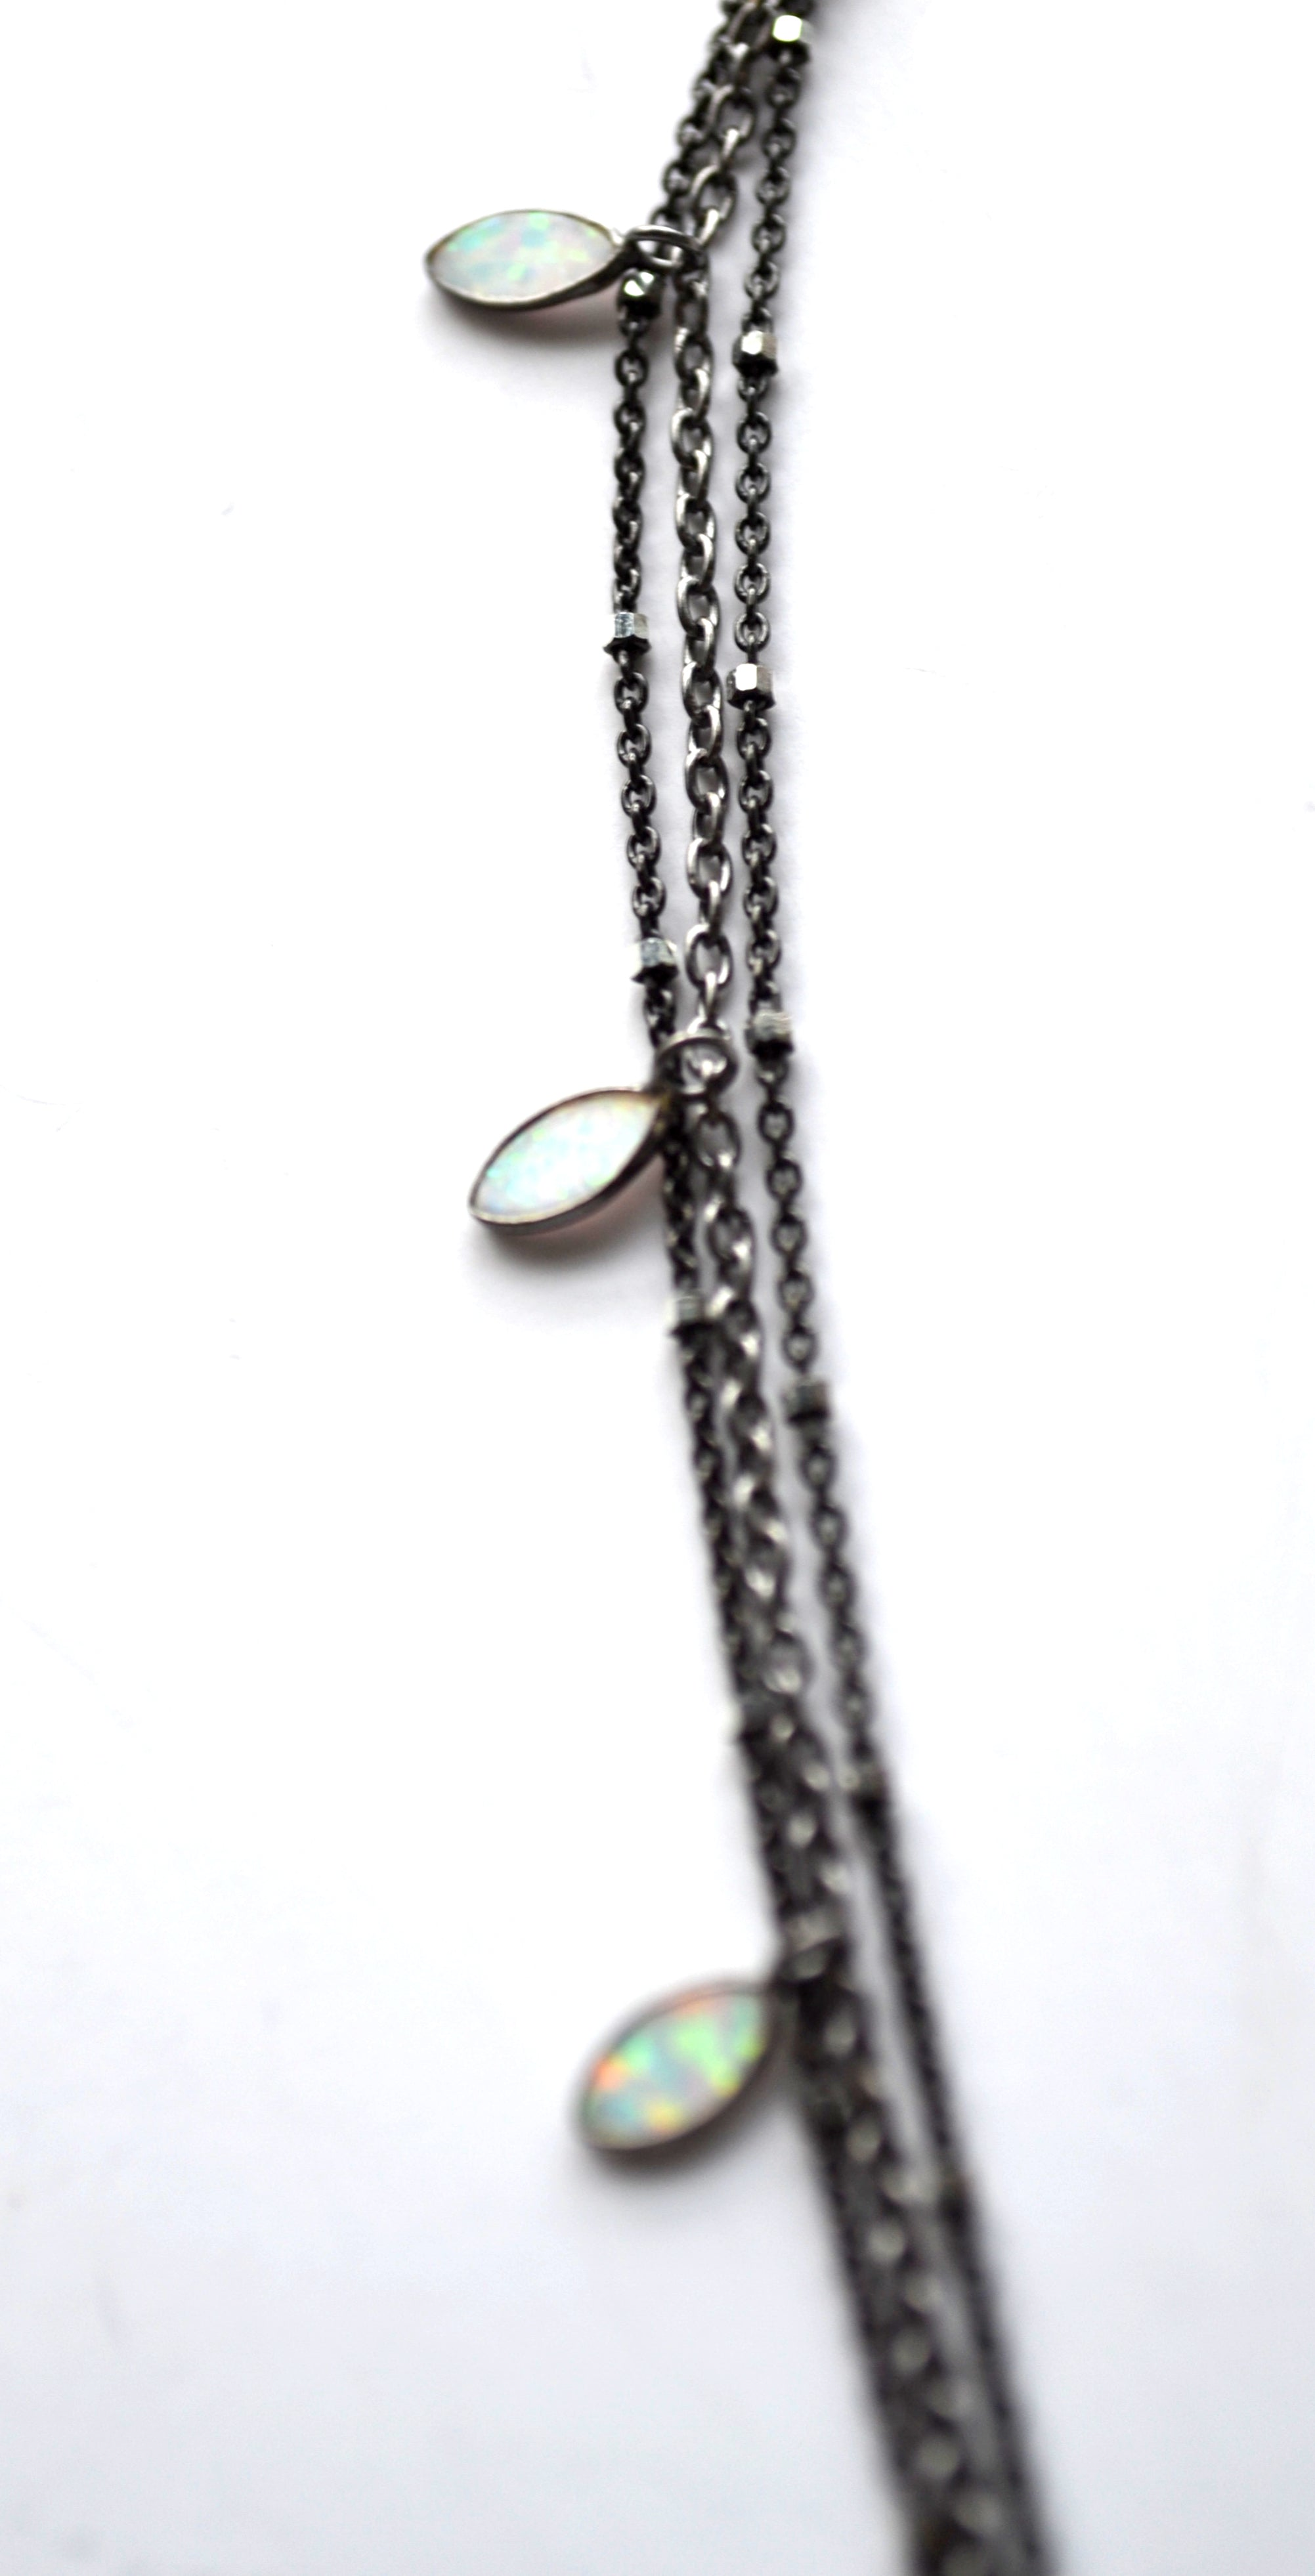 Opal Marquise and Starry Nights Necklace in Oxidized Sterling Silver